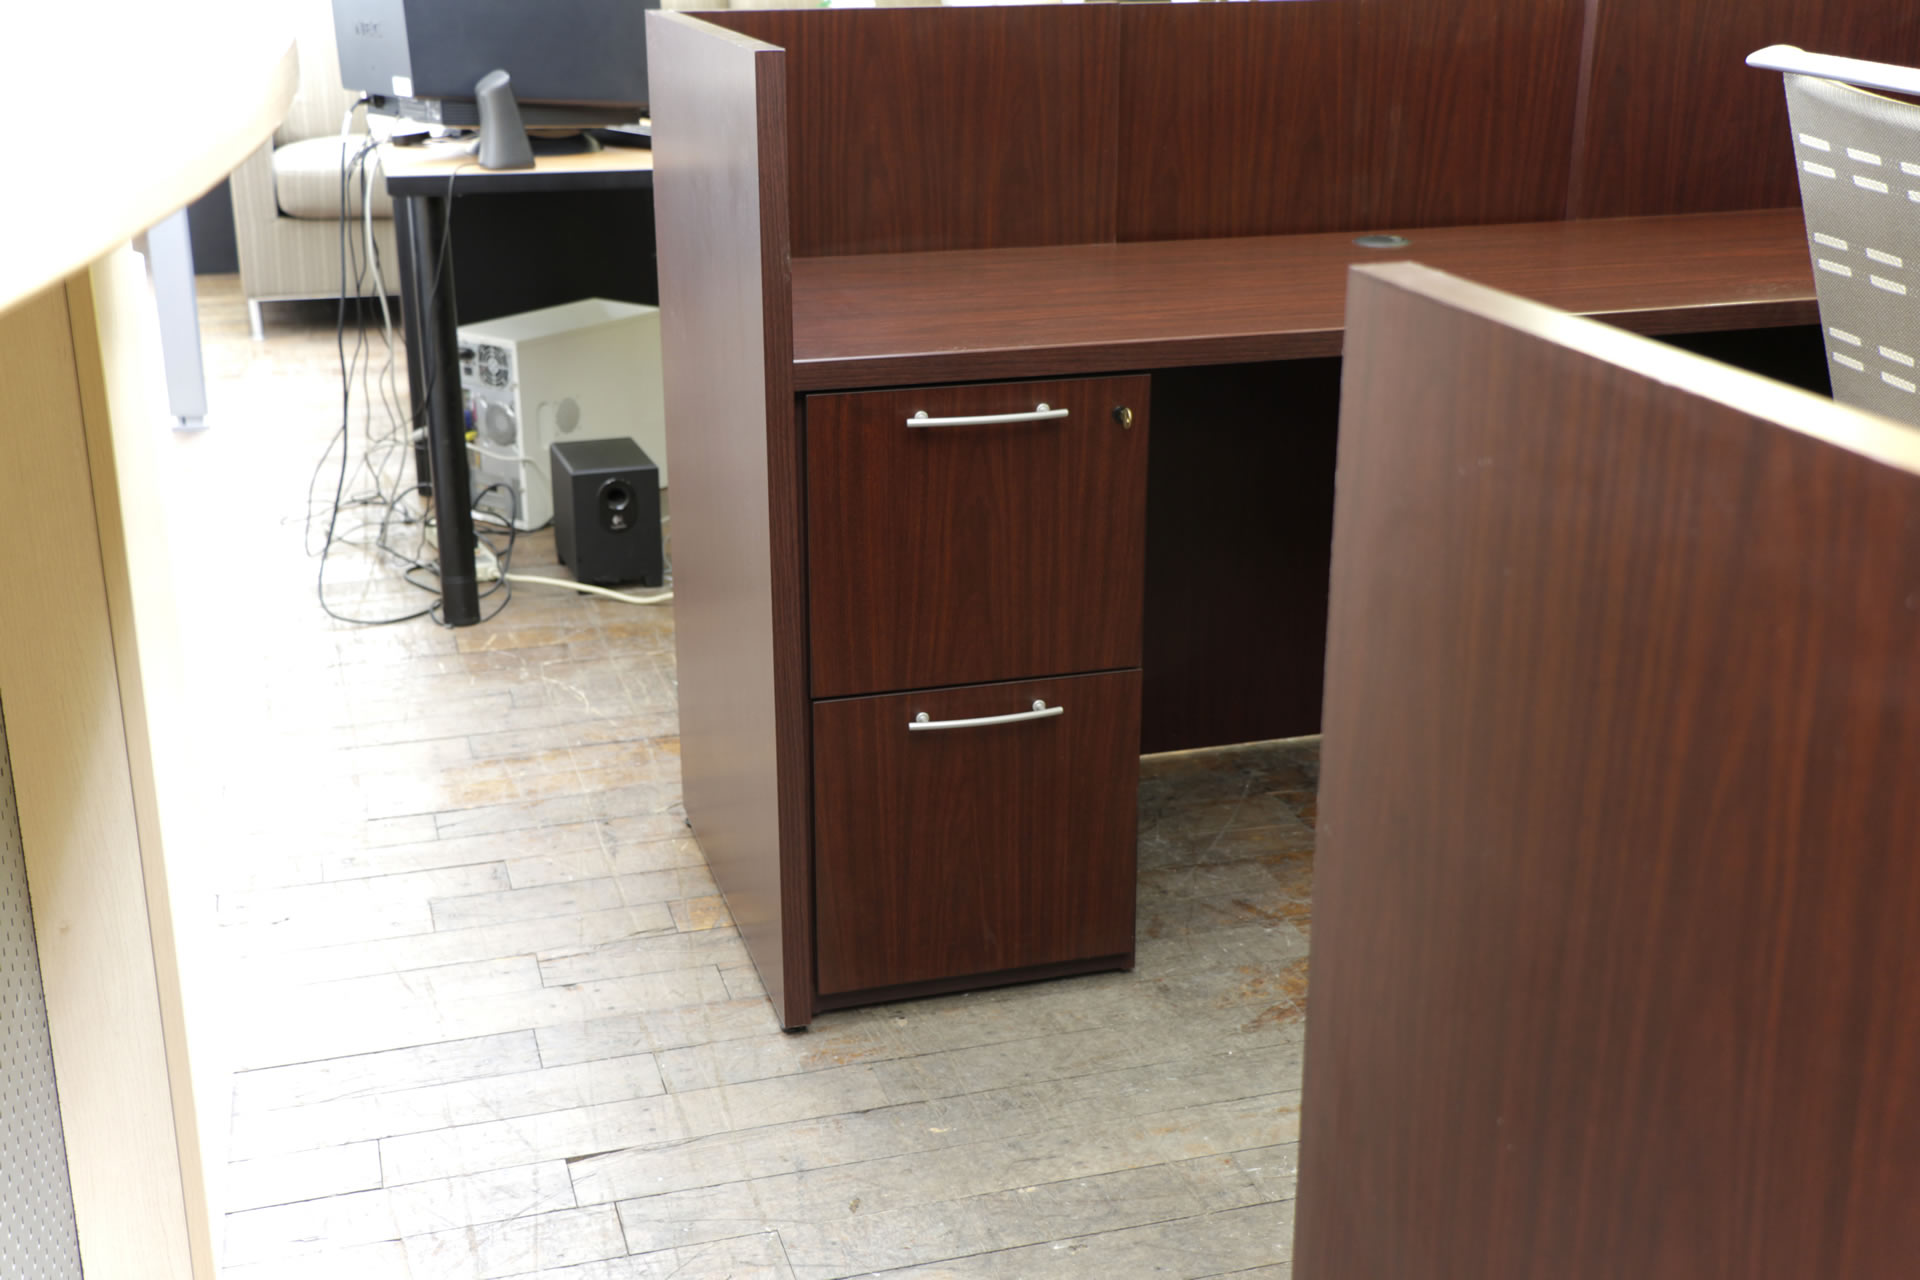 peartreeofficefurniture_peartreeofficefurniture_mg_5328.jpg